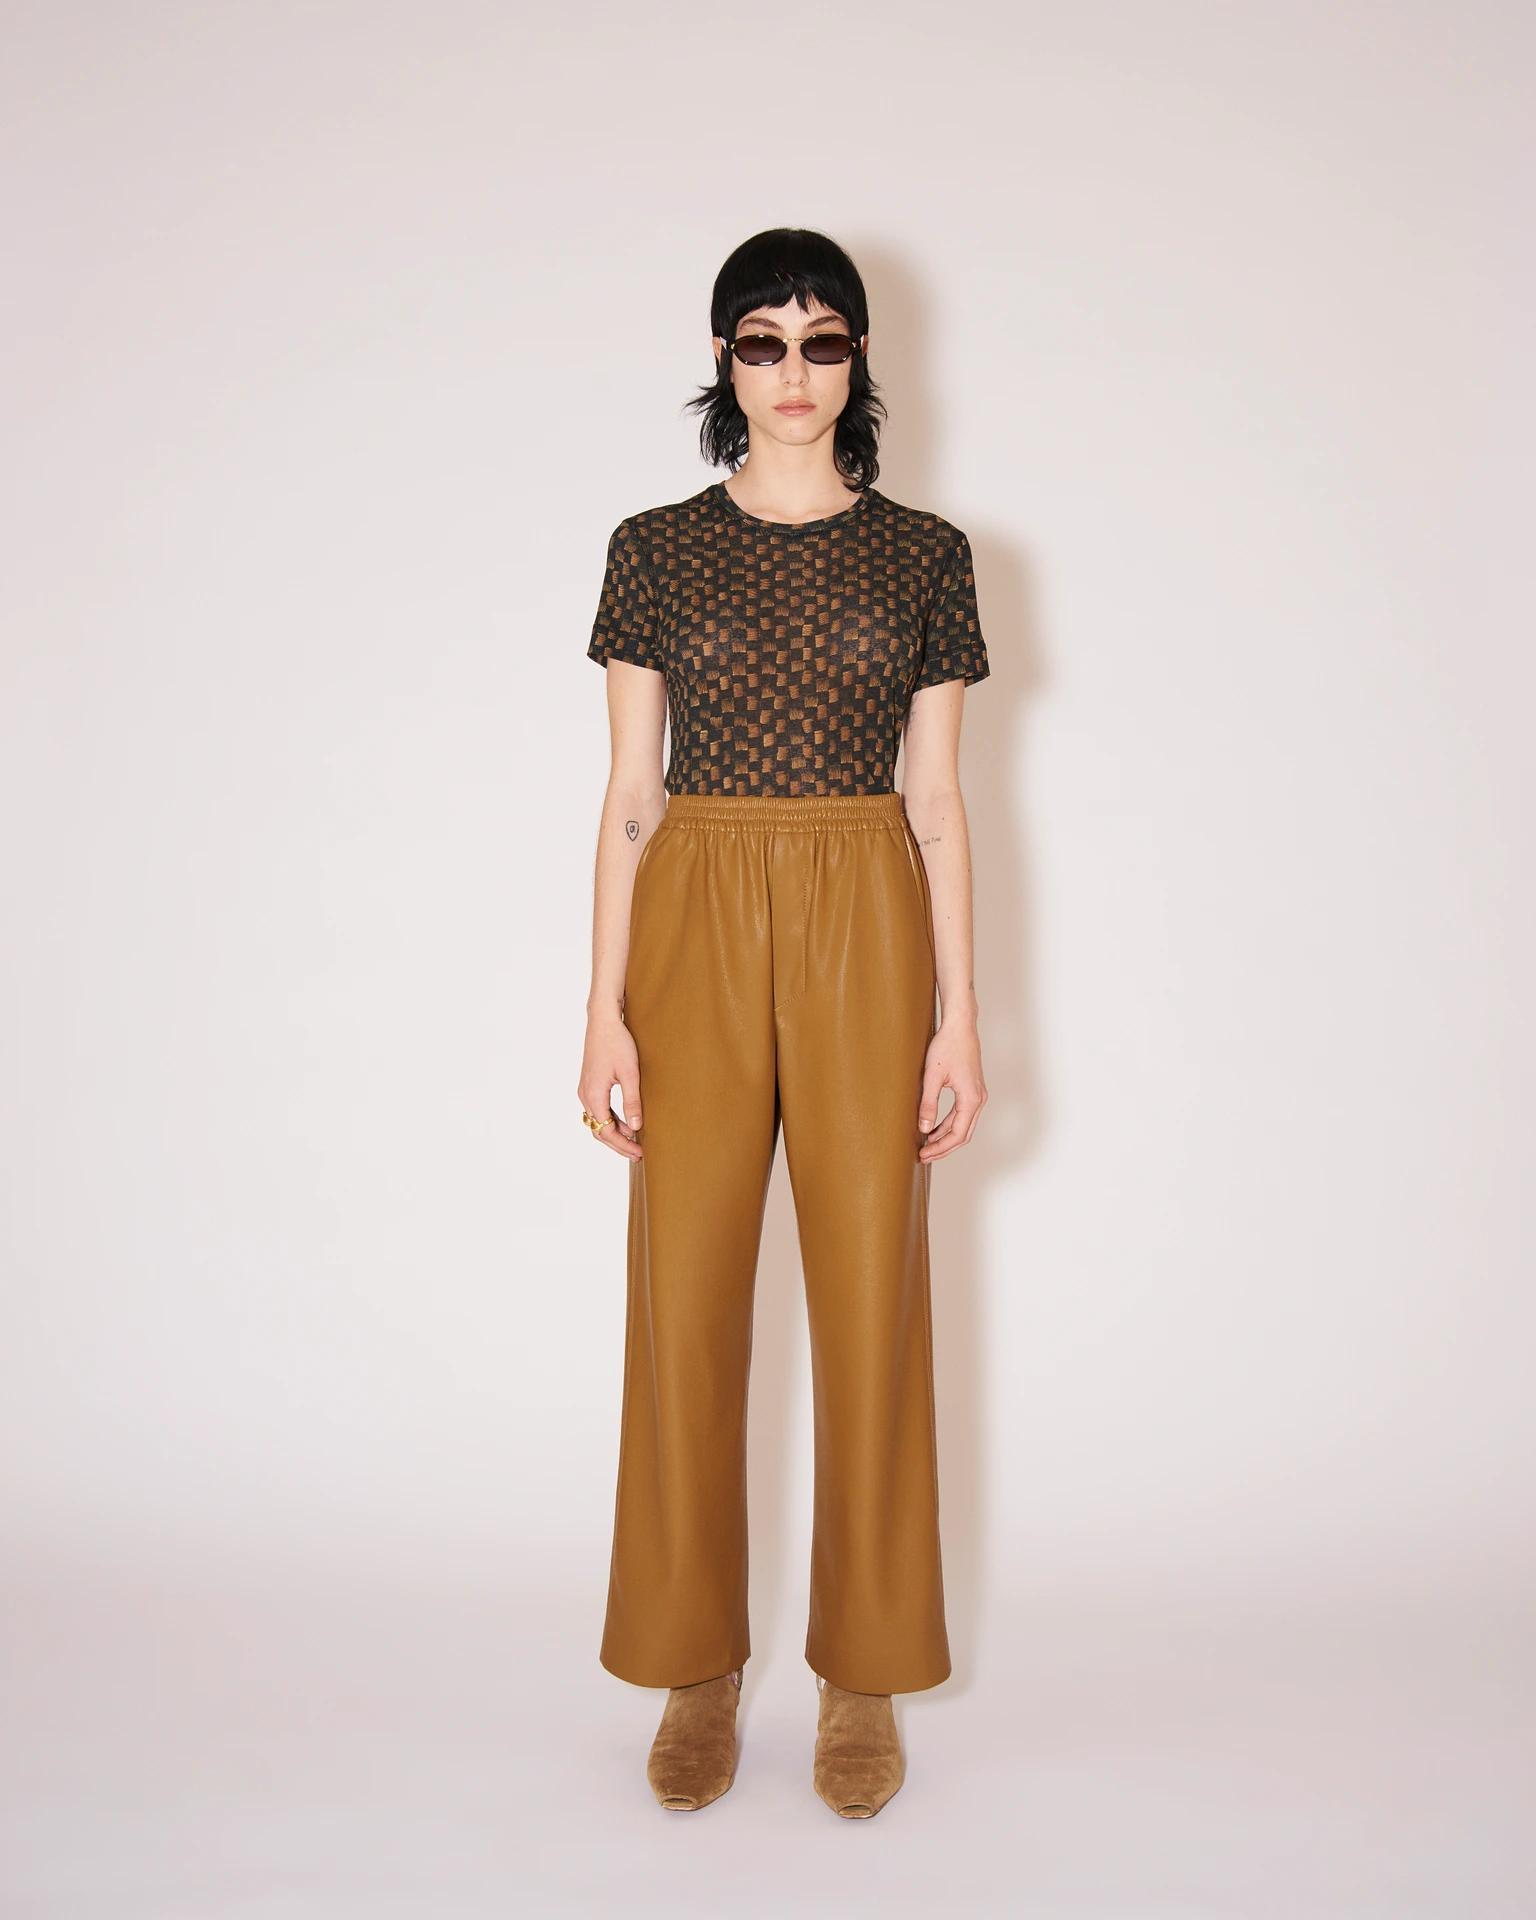 ODESSA - Vegan leather casual pants - Curry